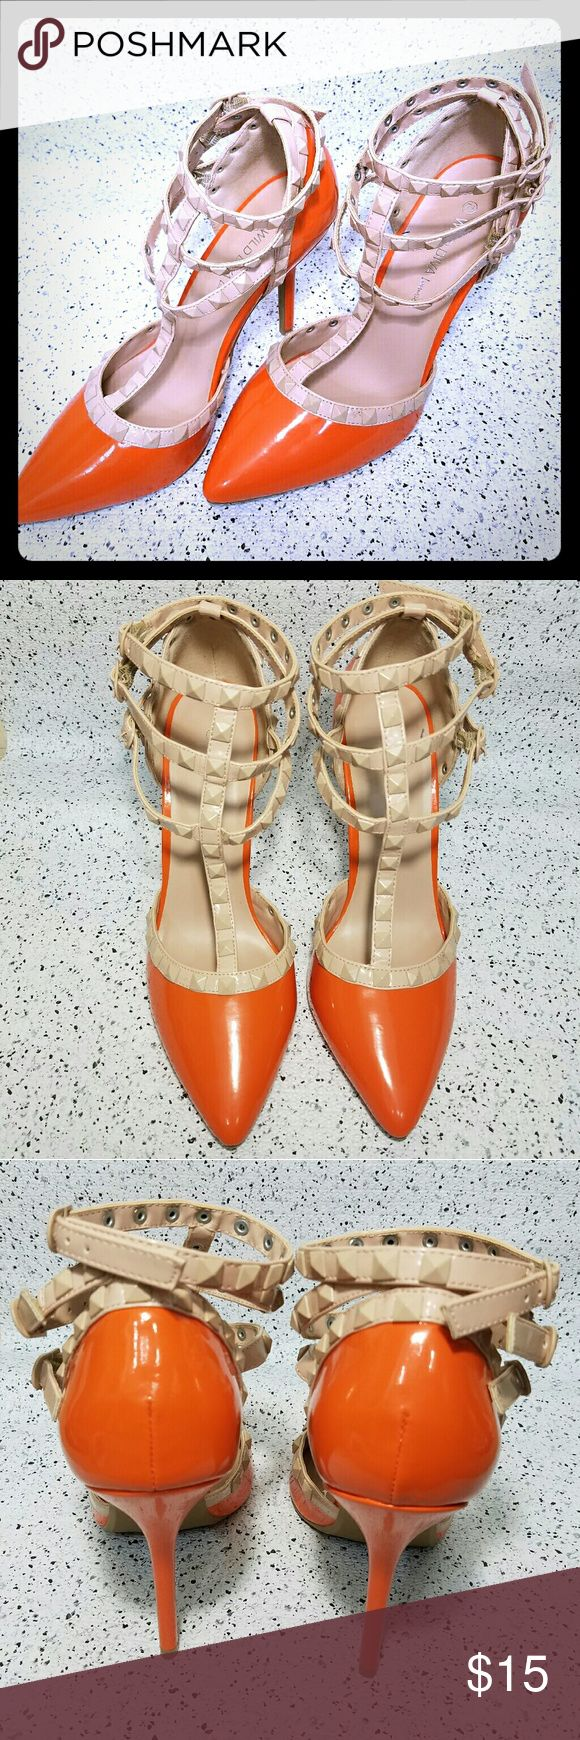 Women heels Orange high heels sandals. I have never worn it. Lovely pair for ur lovely outfit that will enhance your personality more.on shoe it says size👉 7.5 but it  is fit for size 8. I dnt know i think its narrow toe shoe thats why size is like that.but best fit for size 👉8. Shoes Heels